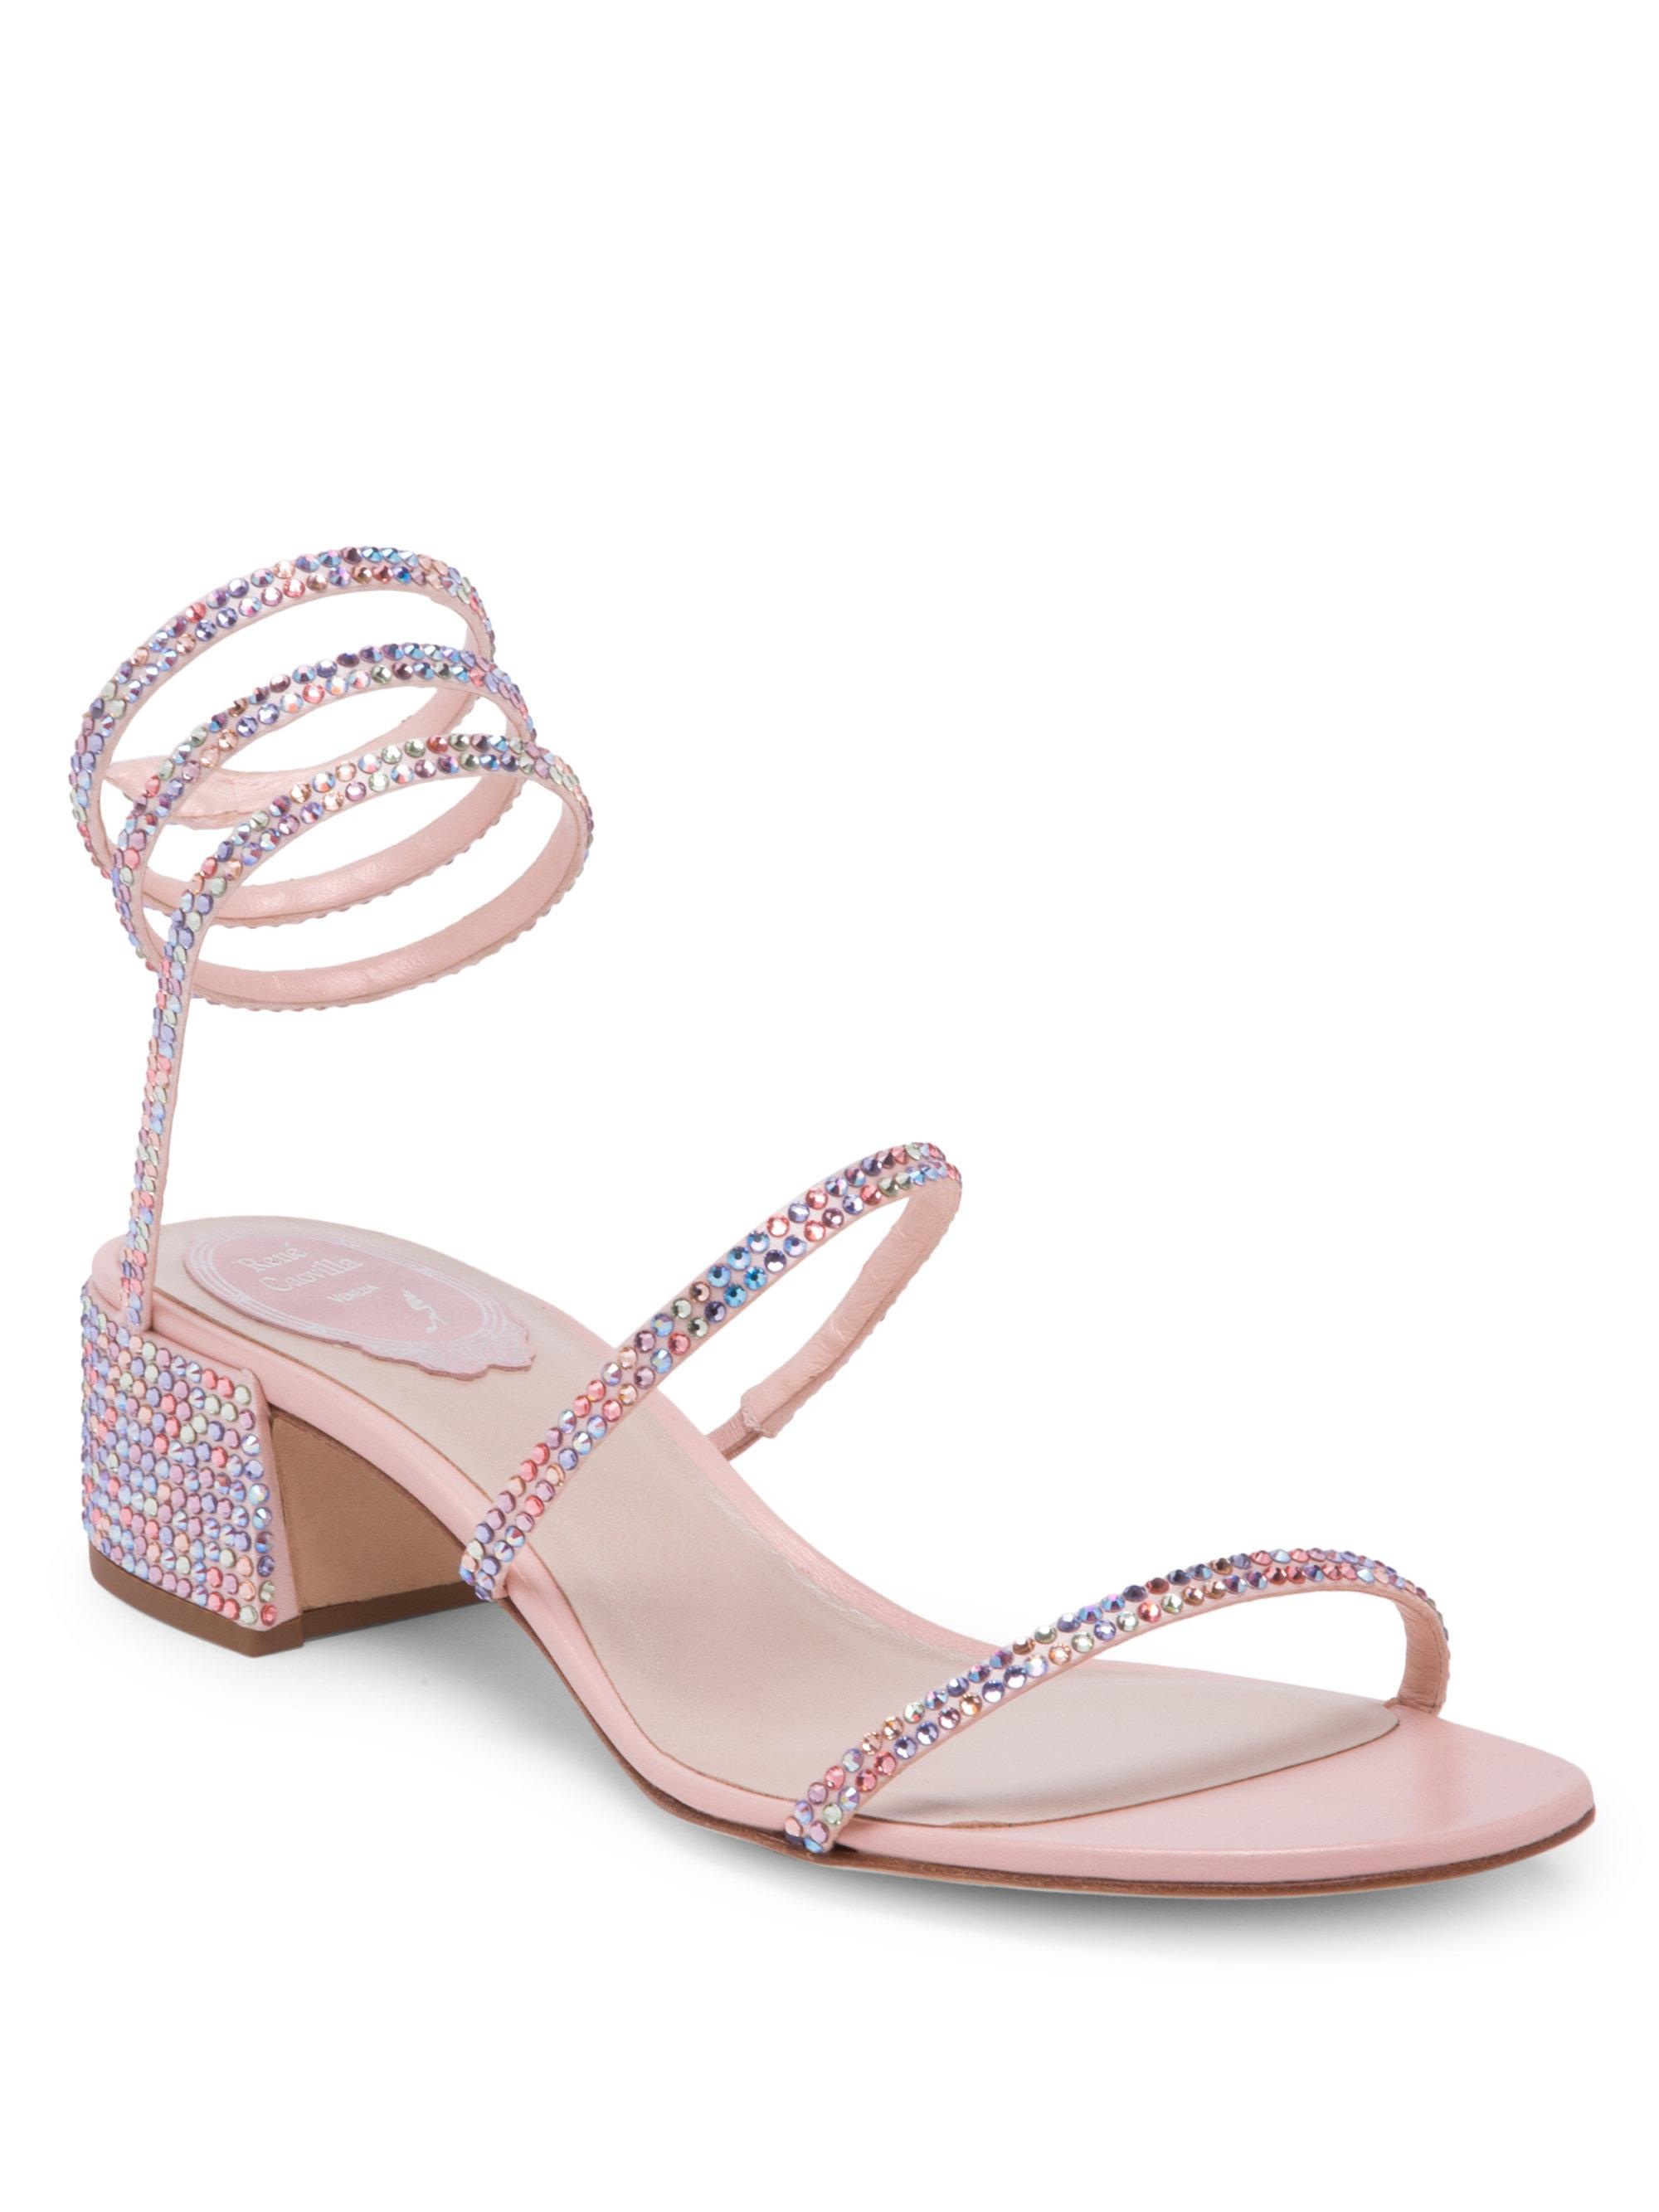 f6b55ed3bb6 Women's Pink Crystal Ankle Wrap Sandals